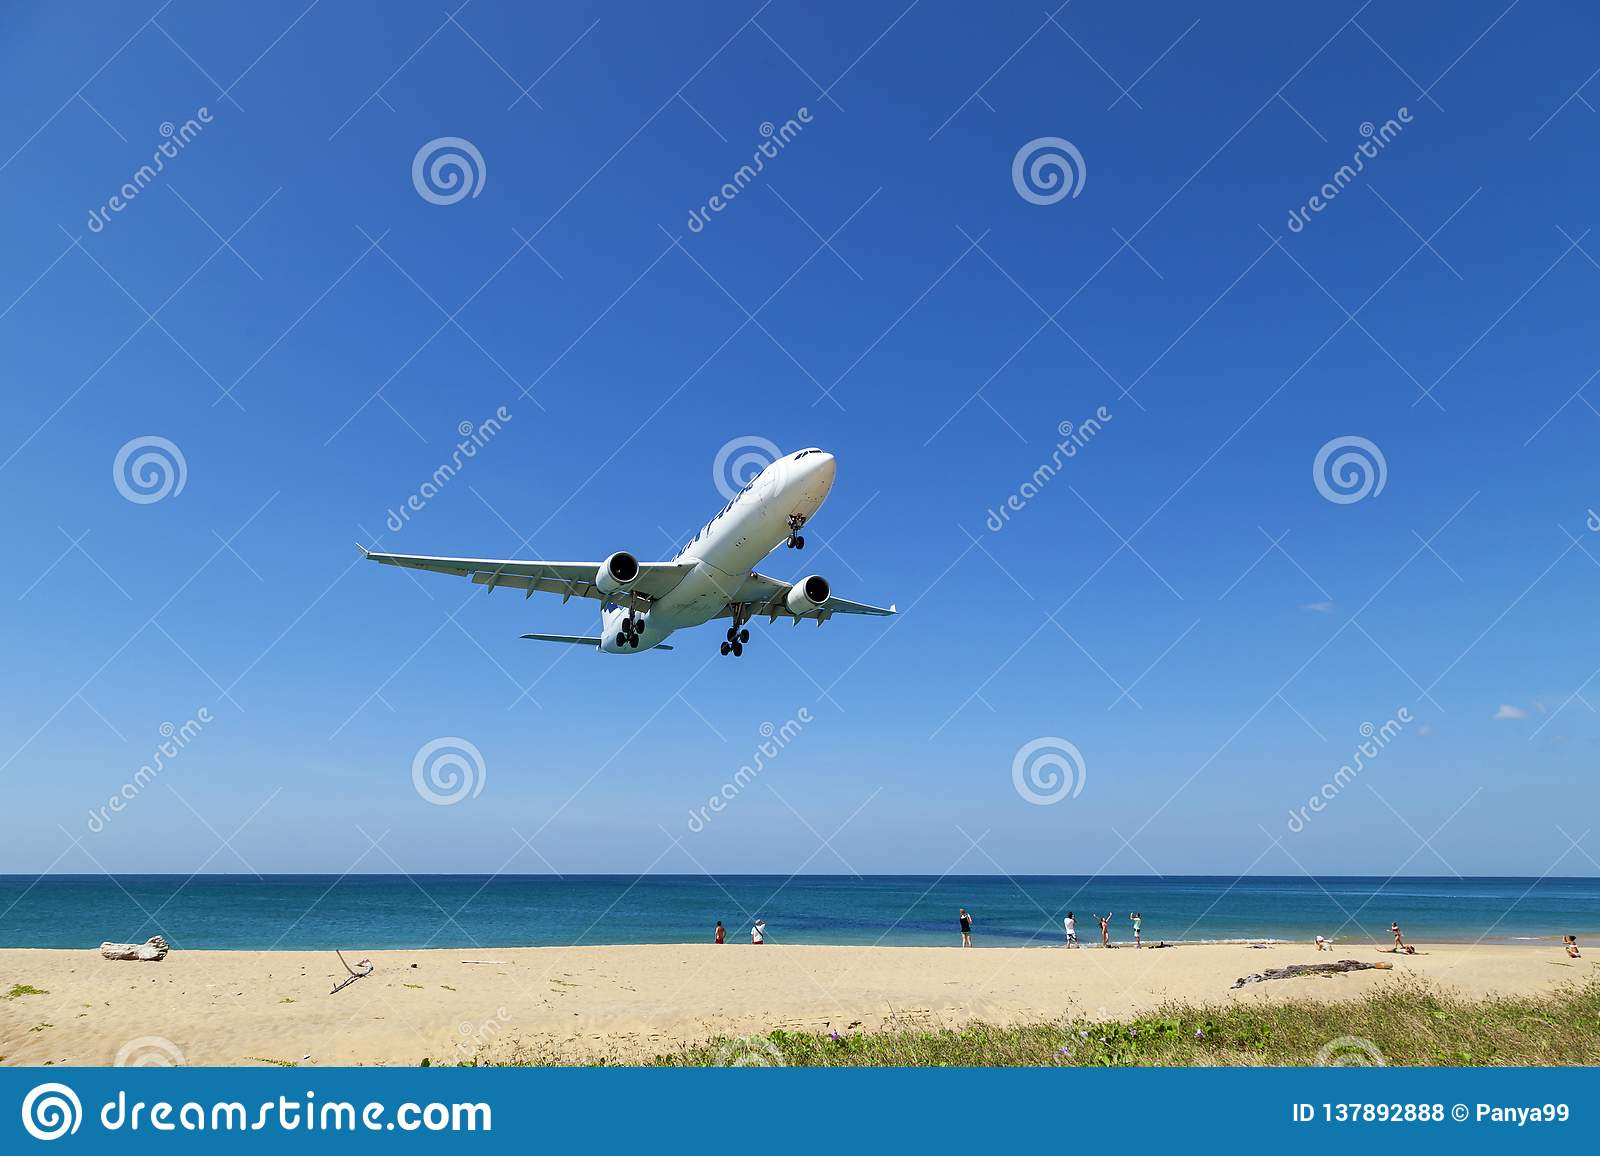 Commercial airplane landing above sea and clear blue sky over beautiful scenery nature background,concept business travel and